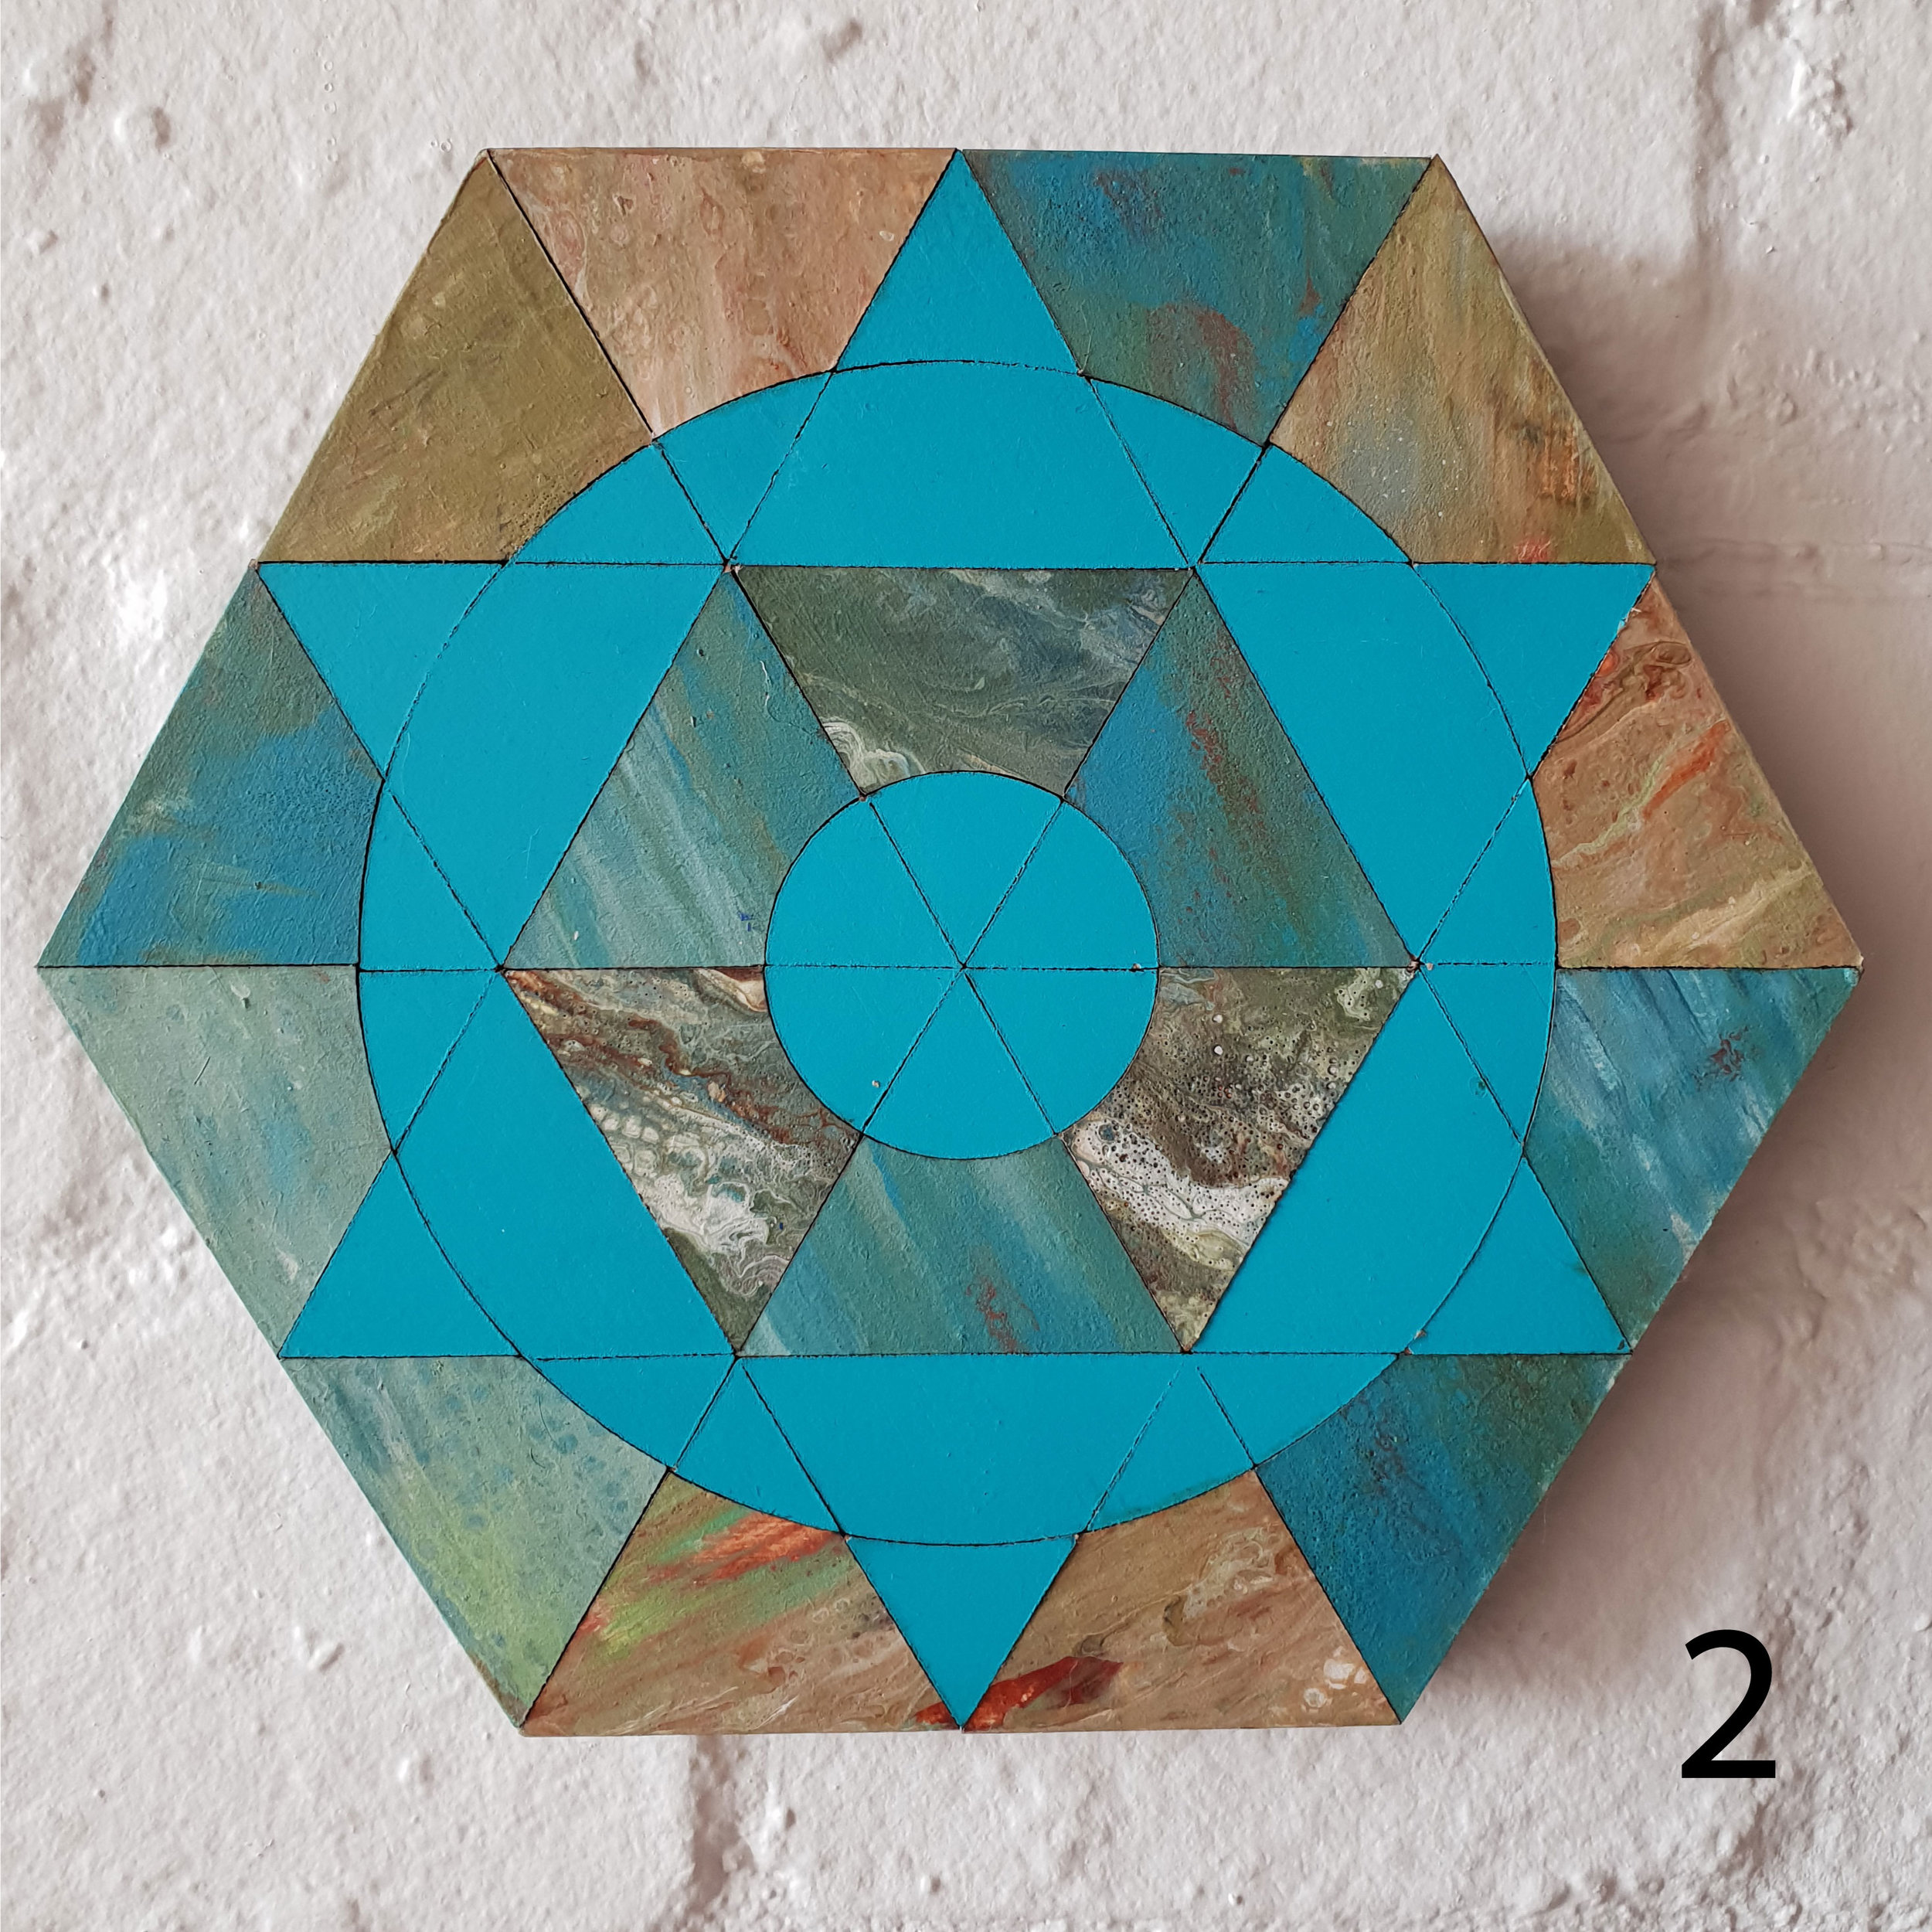 hexagon-two.jpg